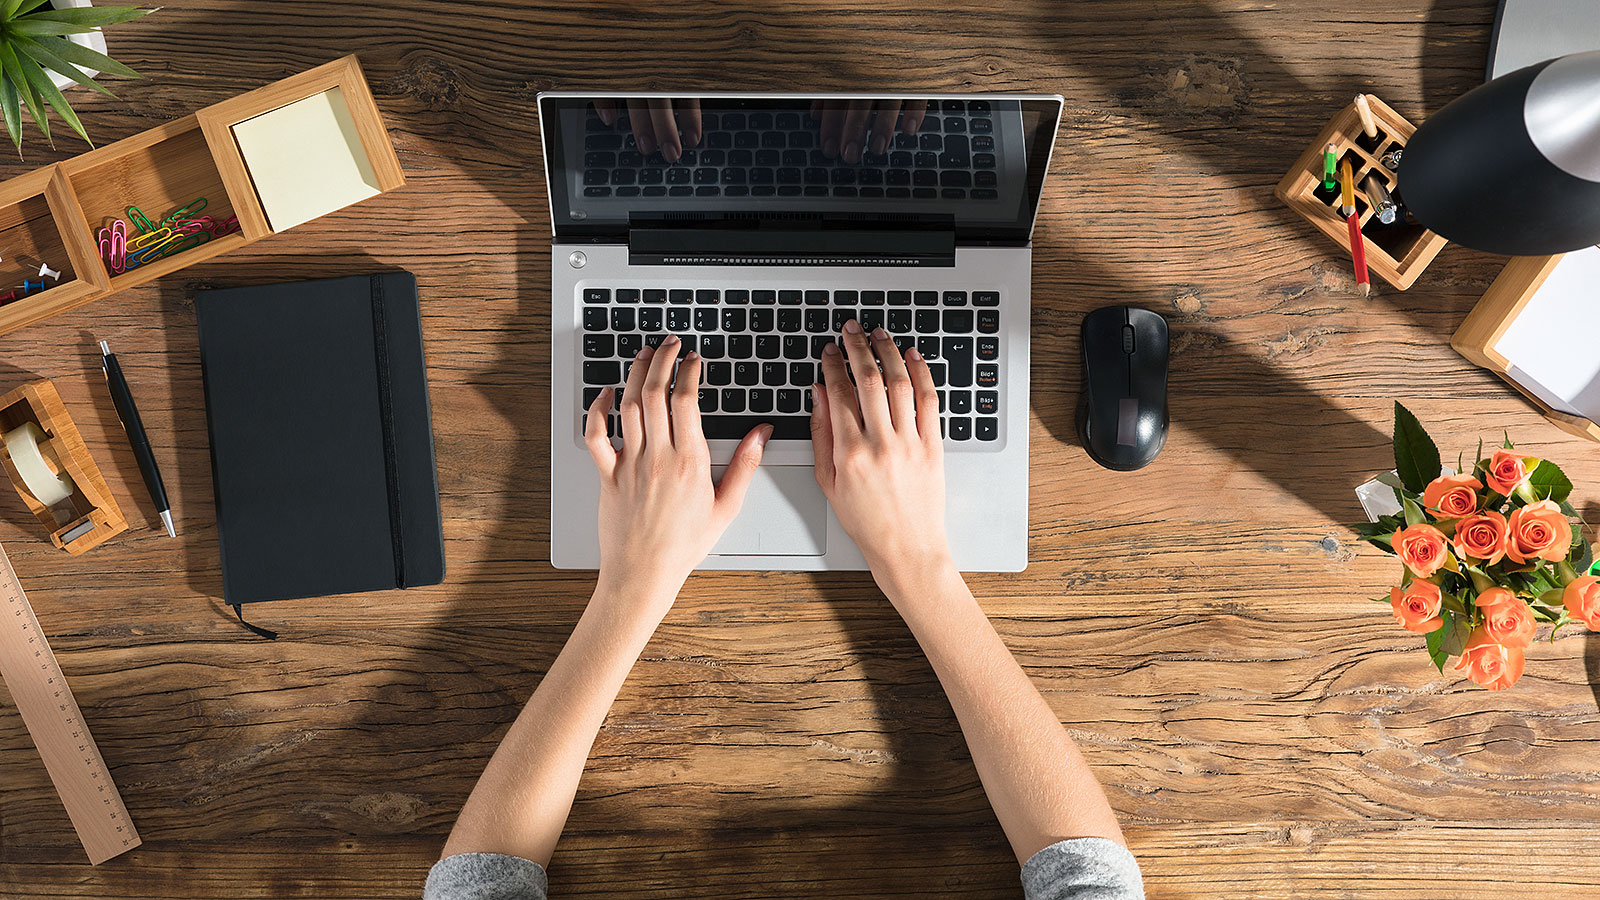 This etiquette expert says you must always do these 3 things when writing an email